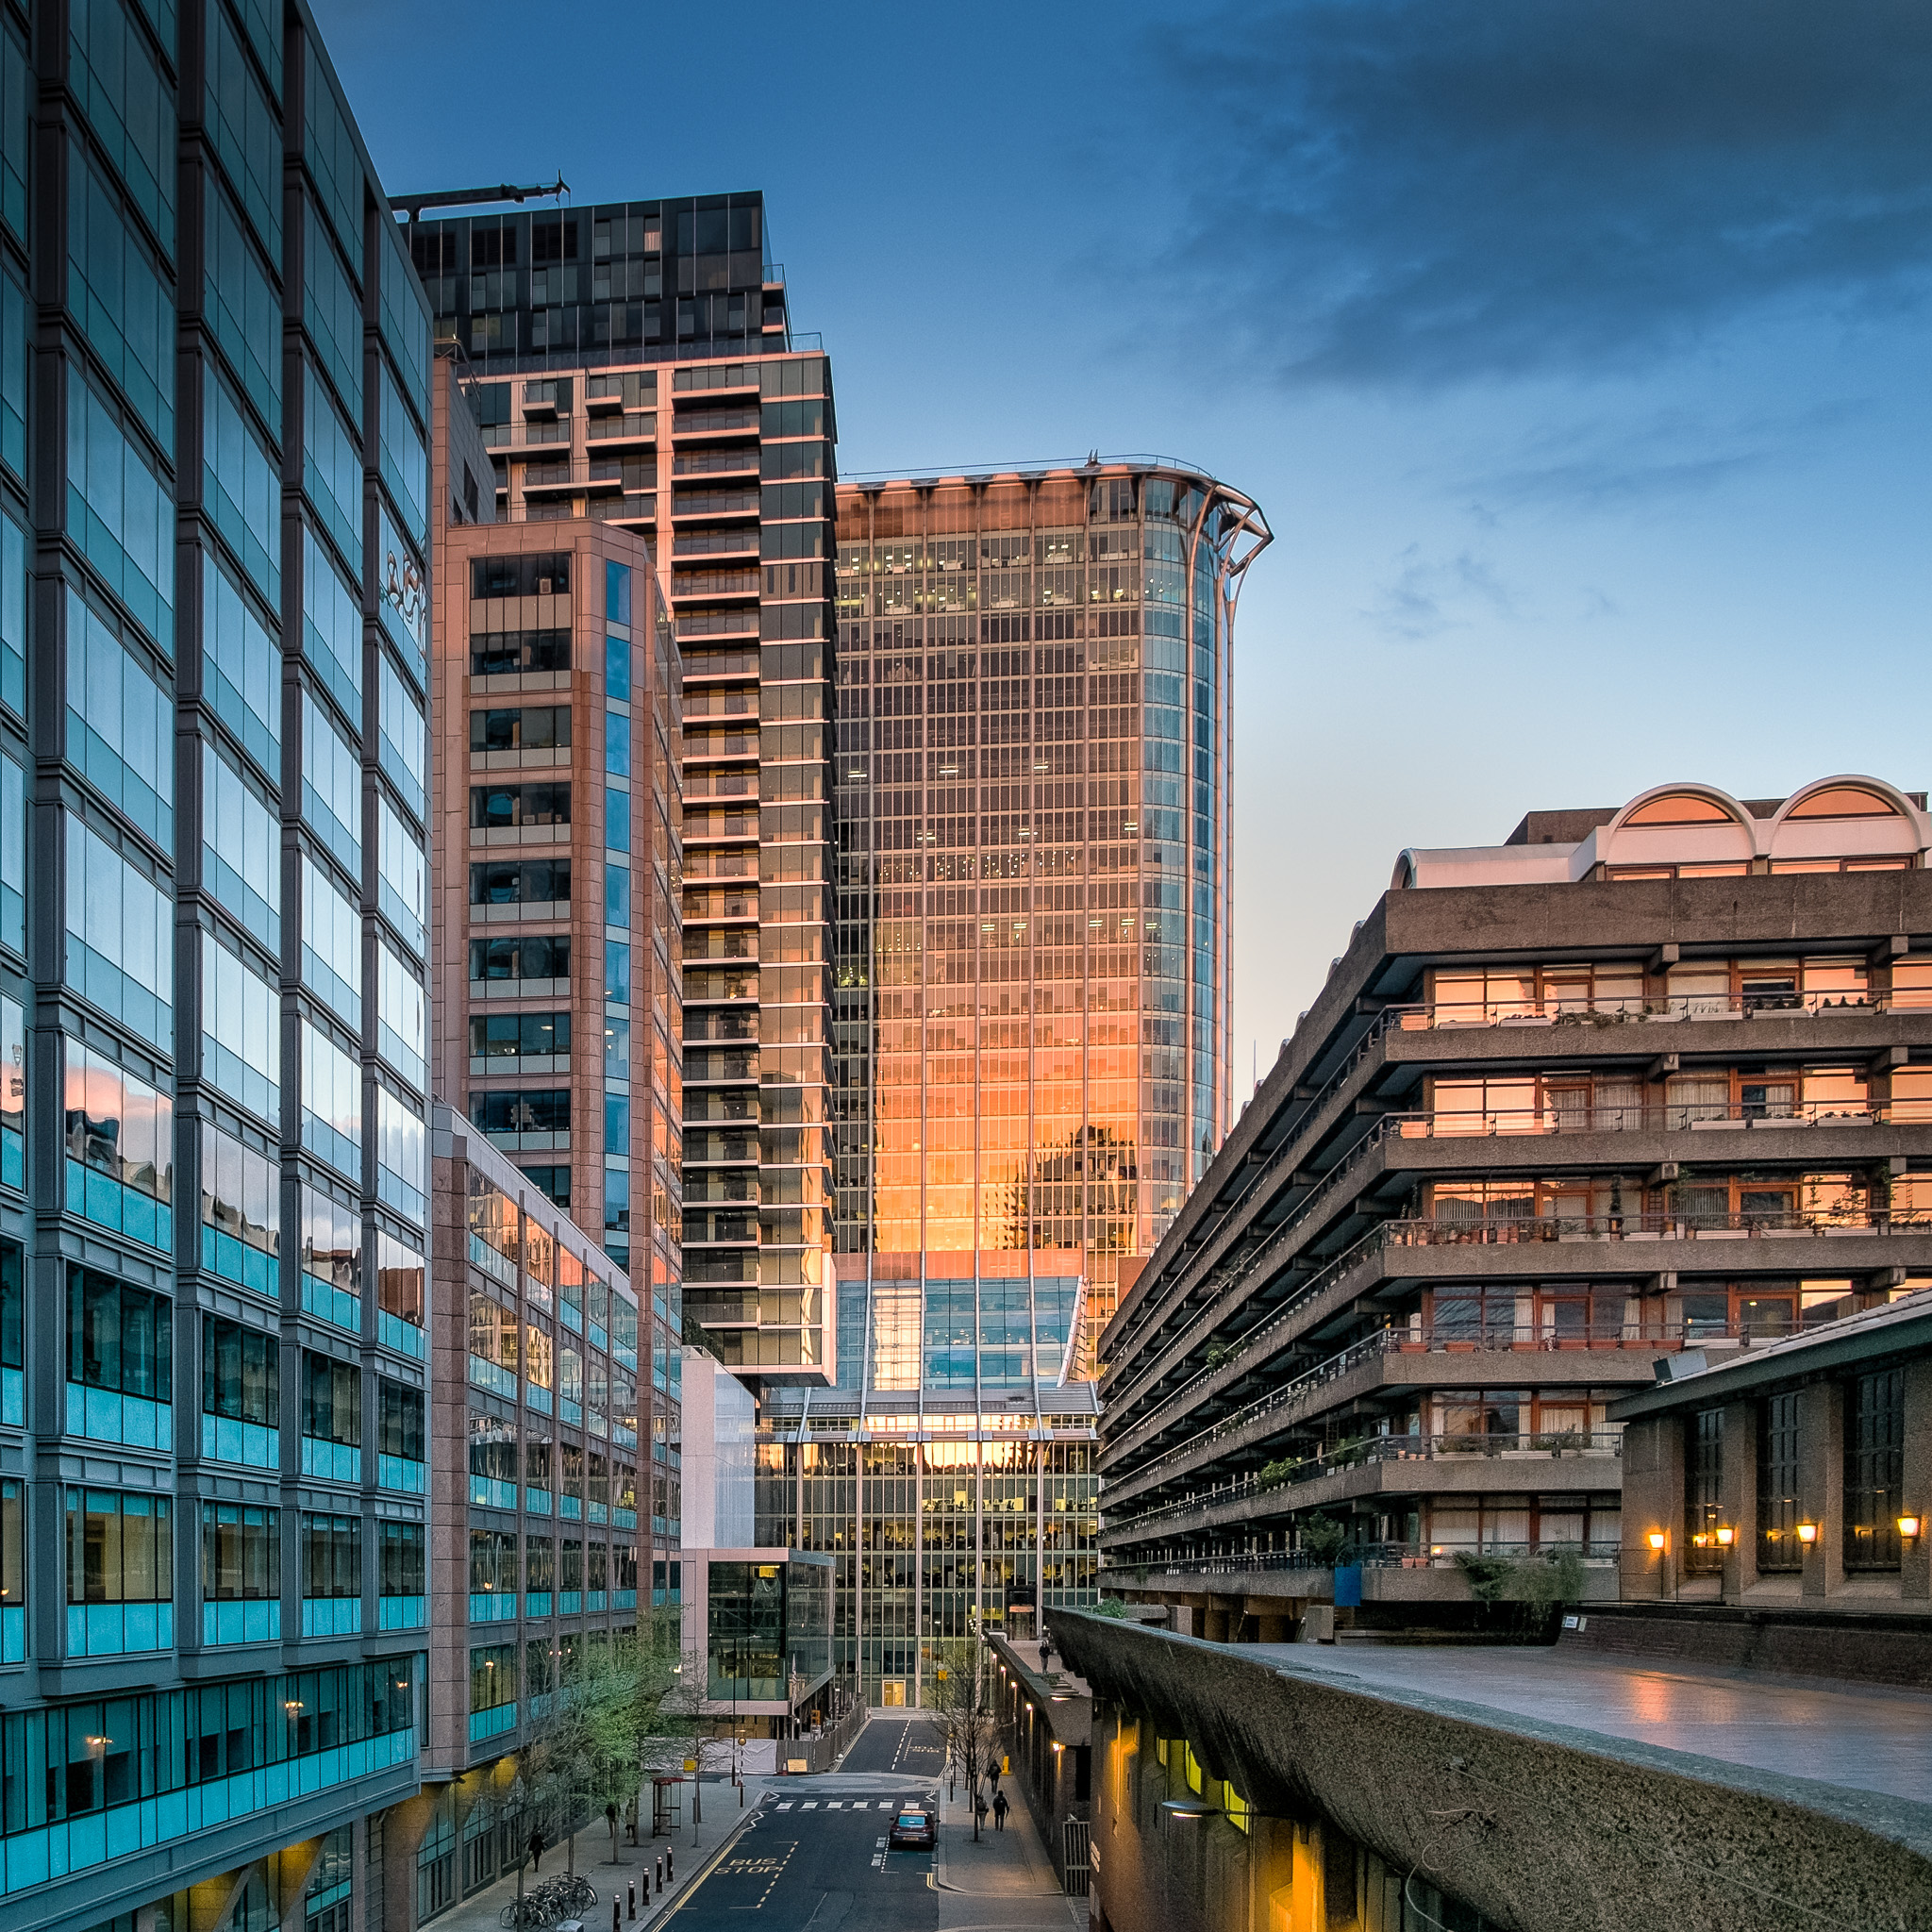 The Heron, Barbican and Citypoint